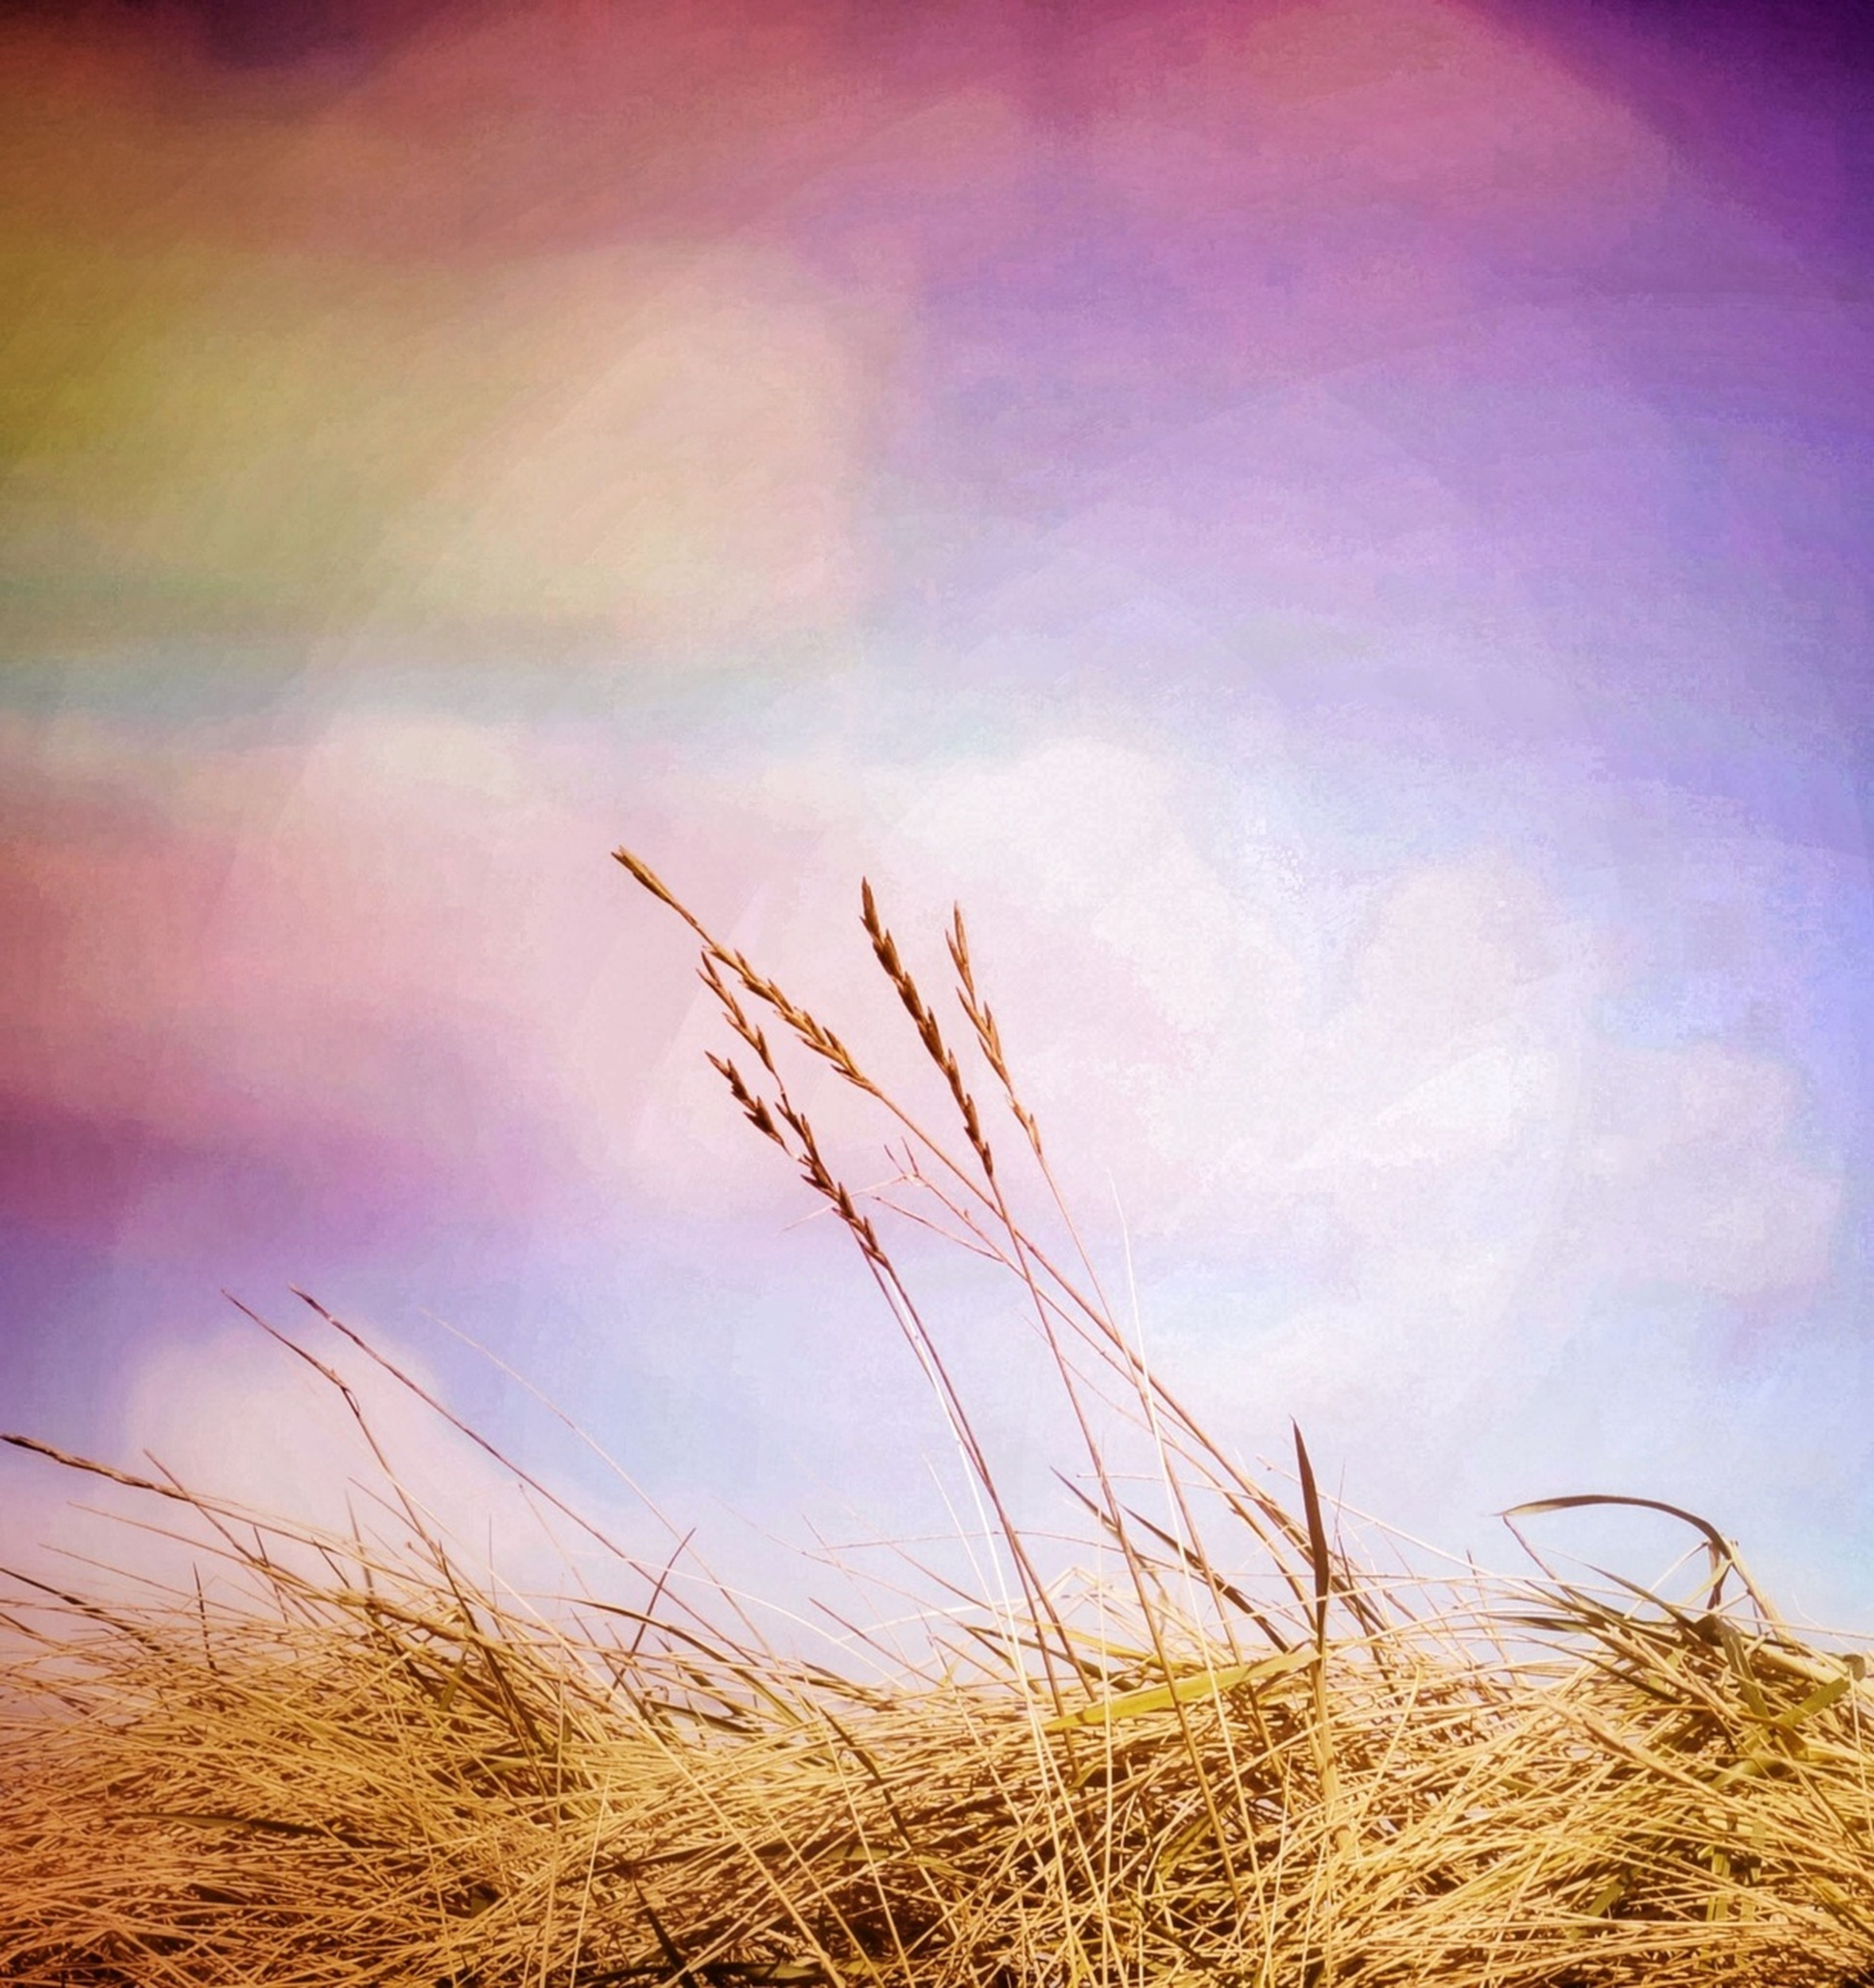 field, grass, sky, plant, growth, nature, rural scene, tranquility, cereal plant, agriculture, crop, tranquil scene, landscape, beauty in nature, stalk, dry, wheat, farm, reed - grass family, scenics